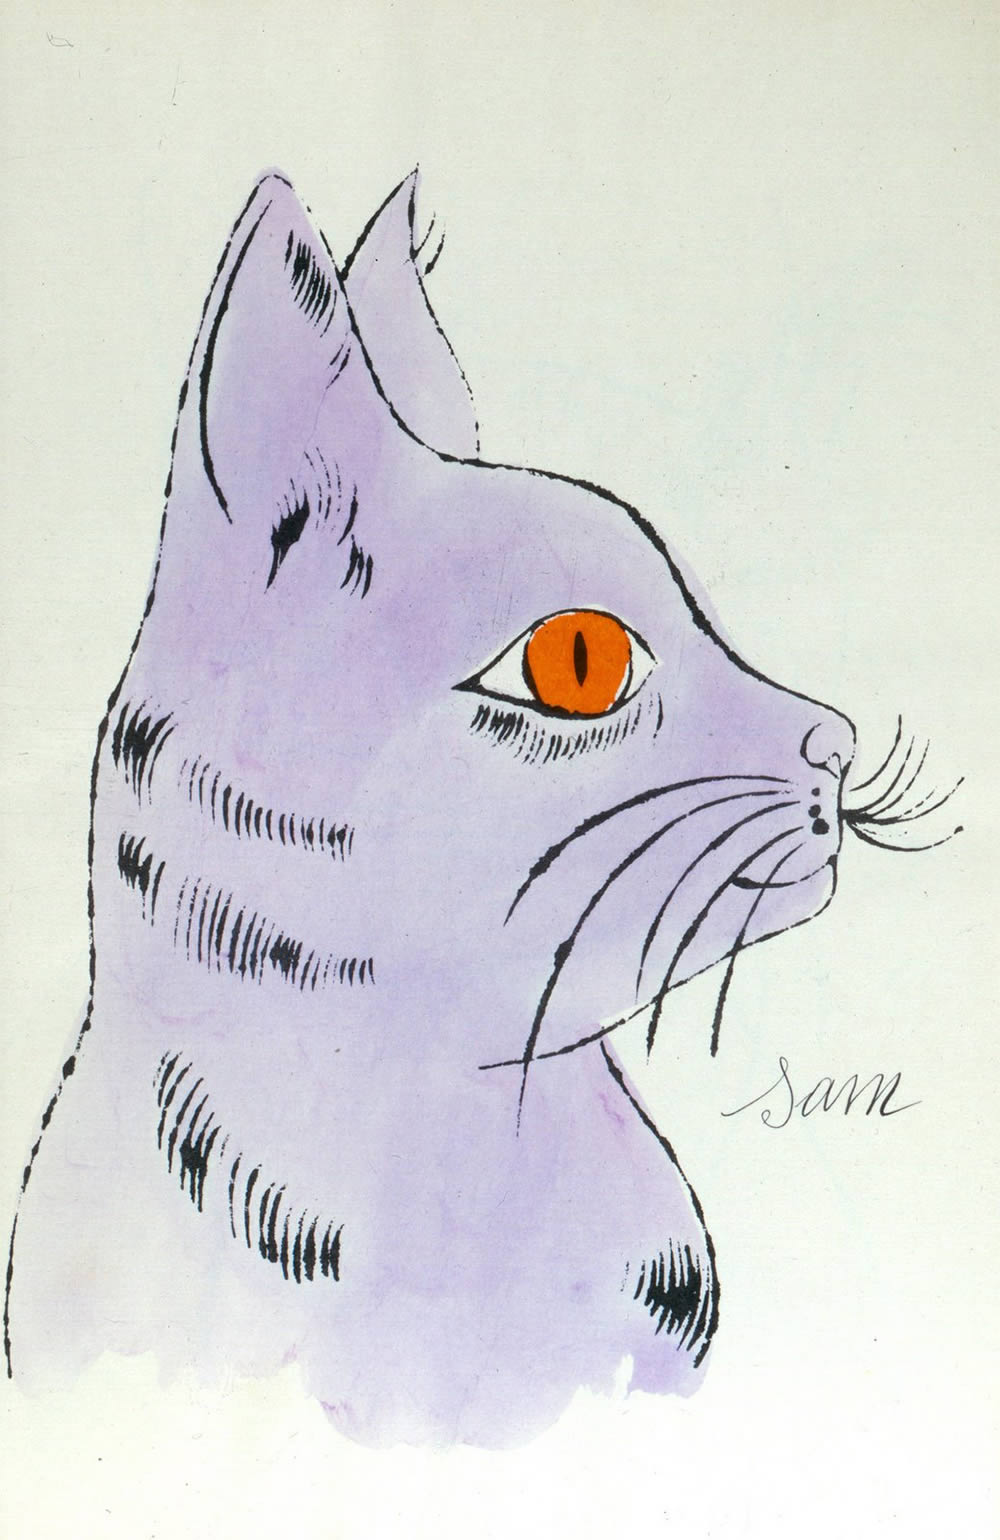 warhol blotted line, 25 Cats Name Sam